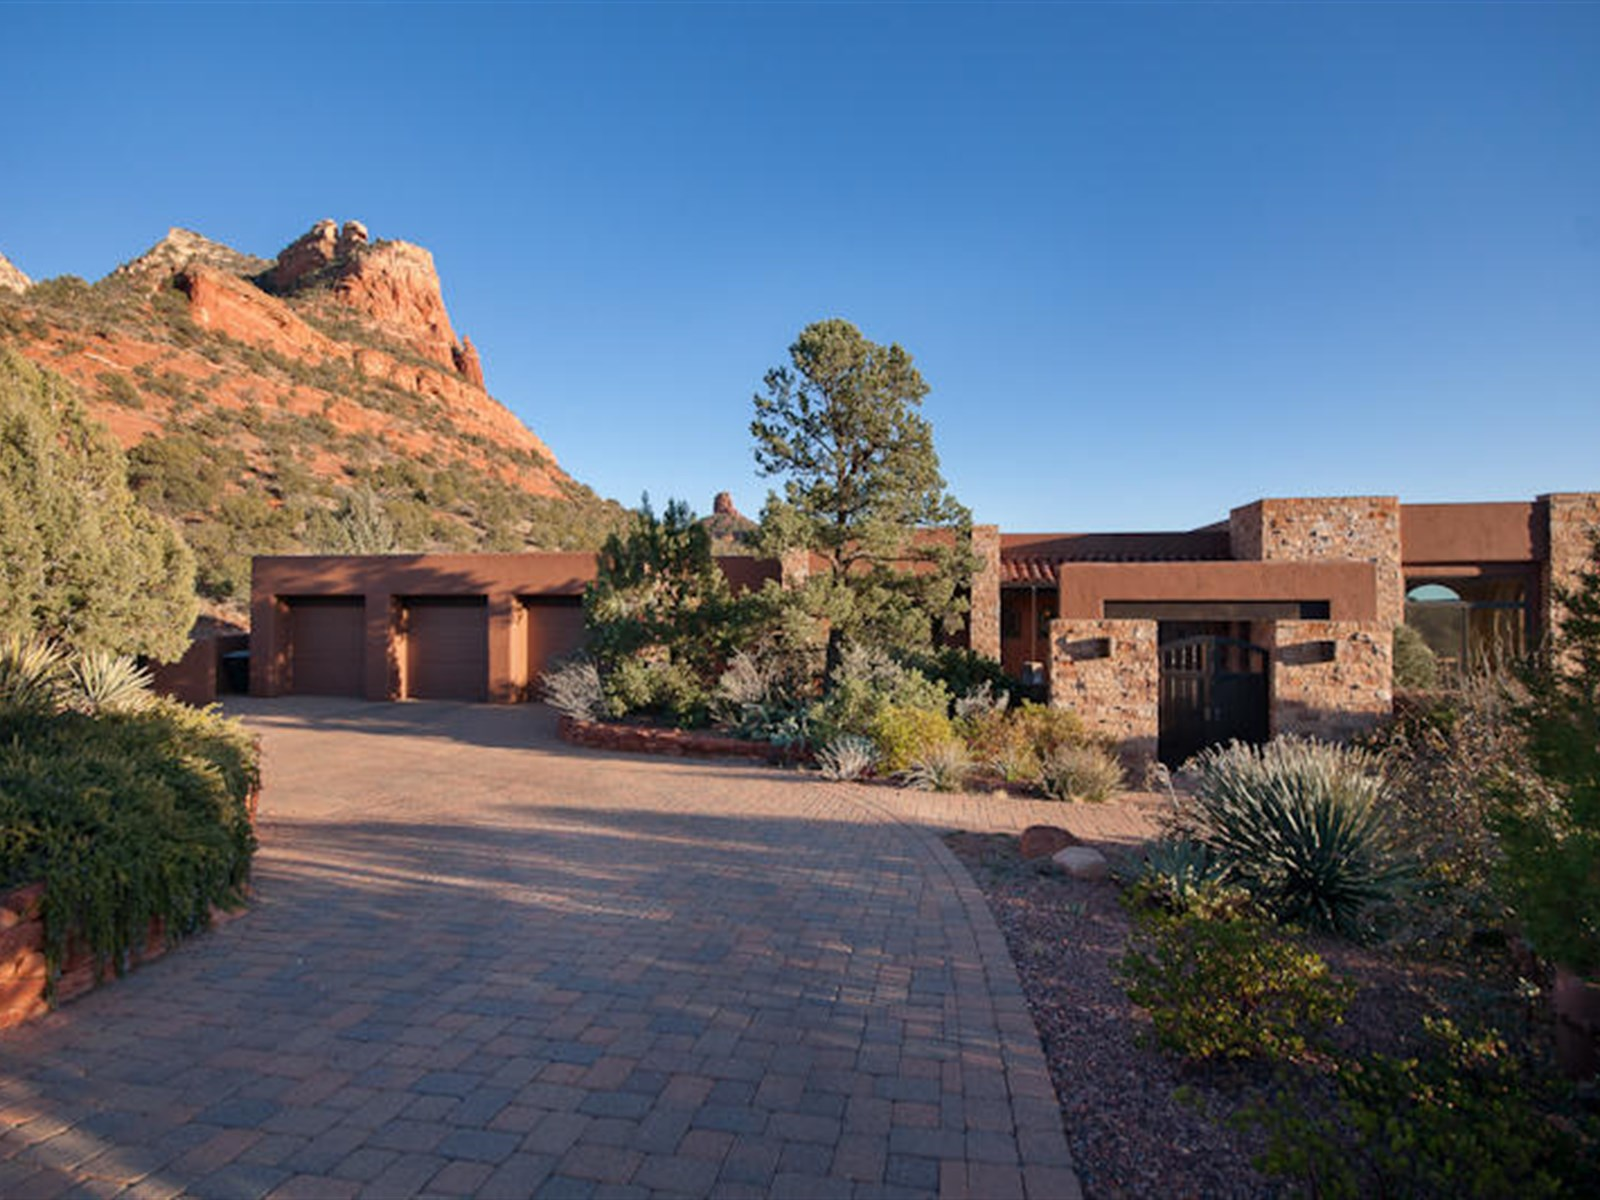 Maison unifamiliale pour l Vente à Exquisite & Private Contemporary Southwest Home 20 Garnet Hill Drive Sedona, Arizona 86336 États-Unis